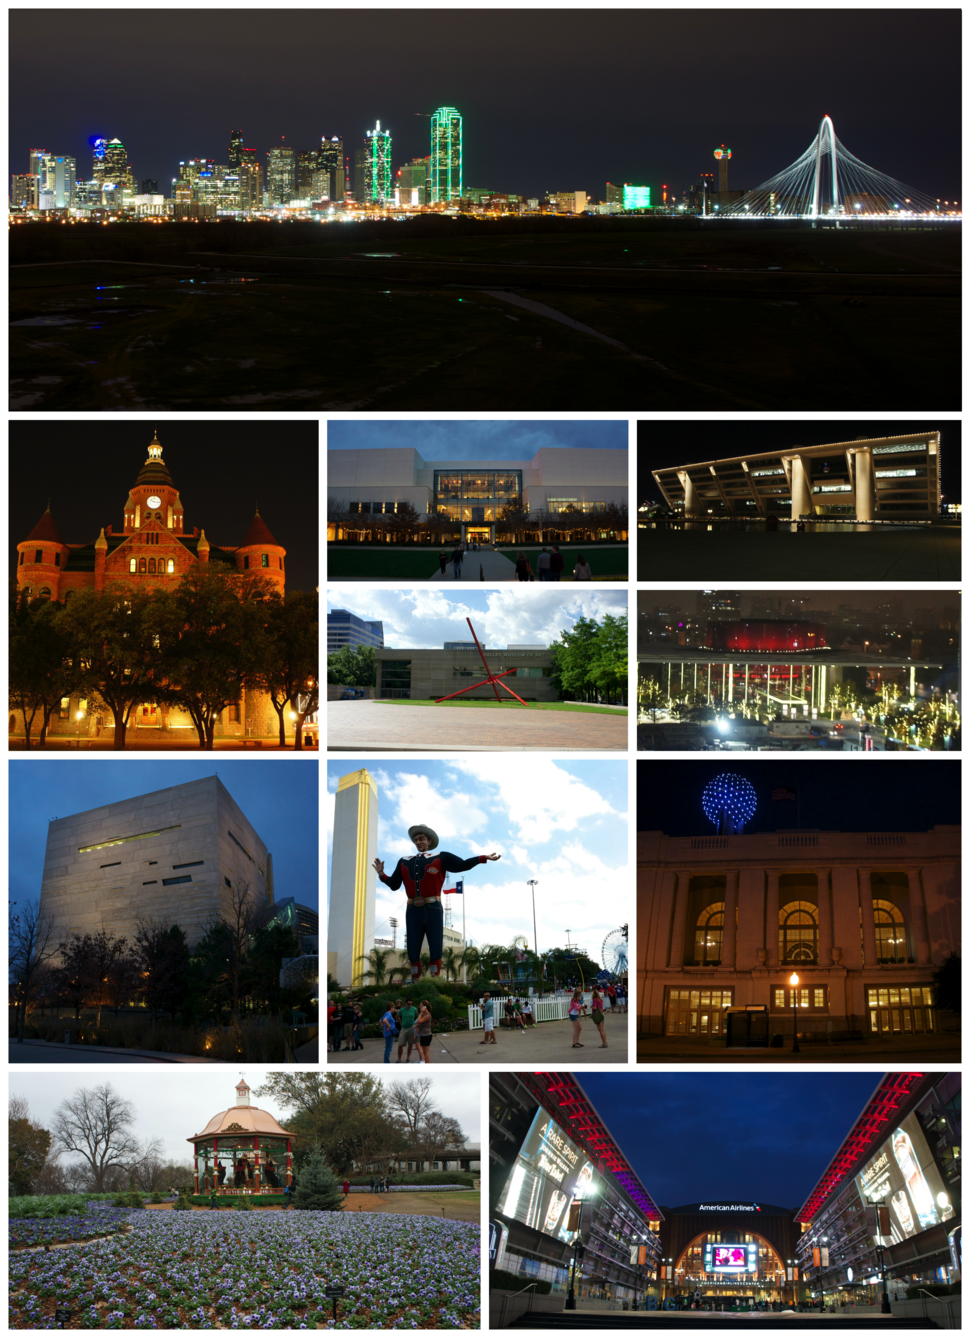 Top to bottom, left to right: Downtown Dallas skyline, Old Red Museum, NorthPark Center, Dallas City Hall, Dallas Museum of Art, Winspear Opera House, Perot Museum of Nature and Science, State Fair of Texas at Fair Park, Dallas Union Station, the Dallas Arboretum and Botanical Garden, and the American Airlines Center